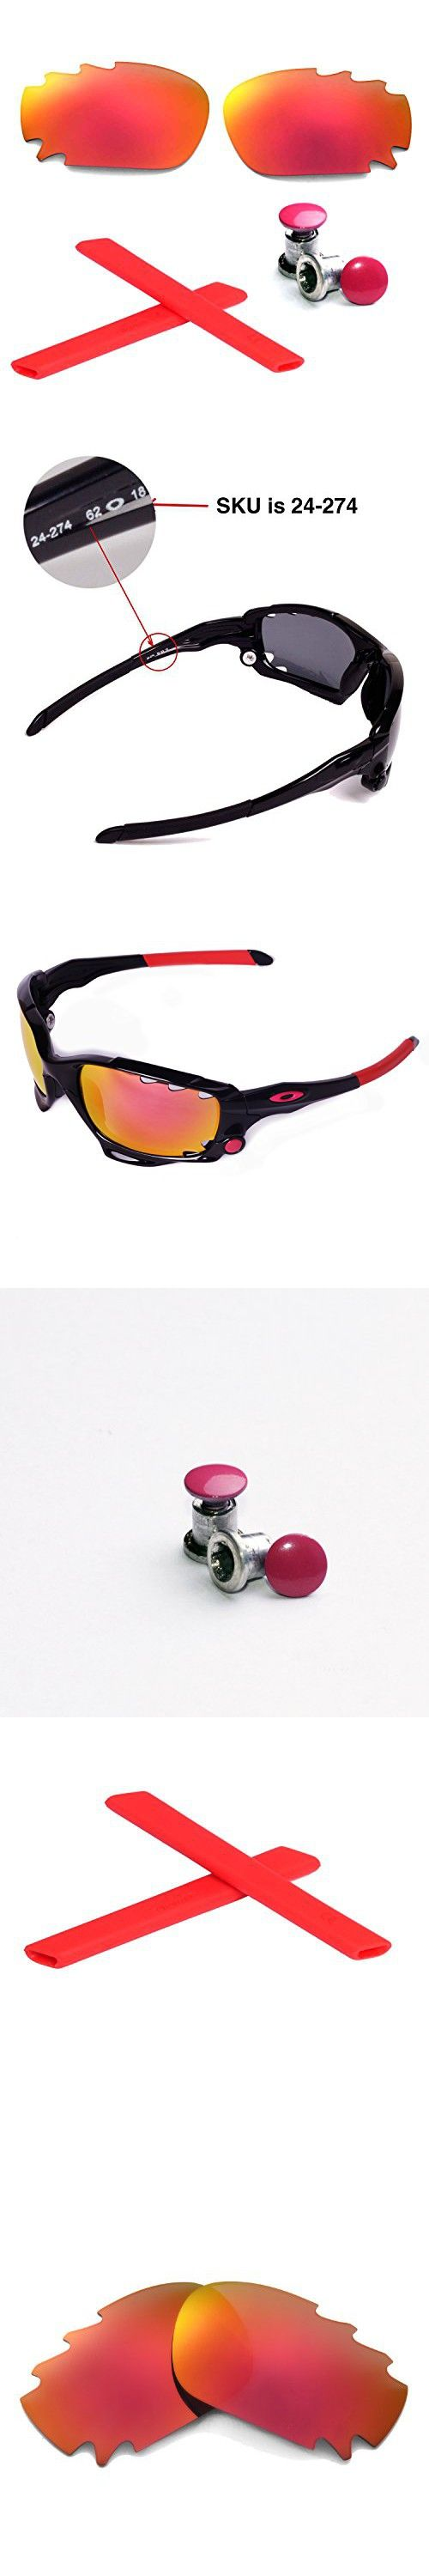 Walleva Polarized Fire Red Vented Lenses+Red Earsocks+Bolt For Oakley Racing Jacket